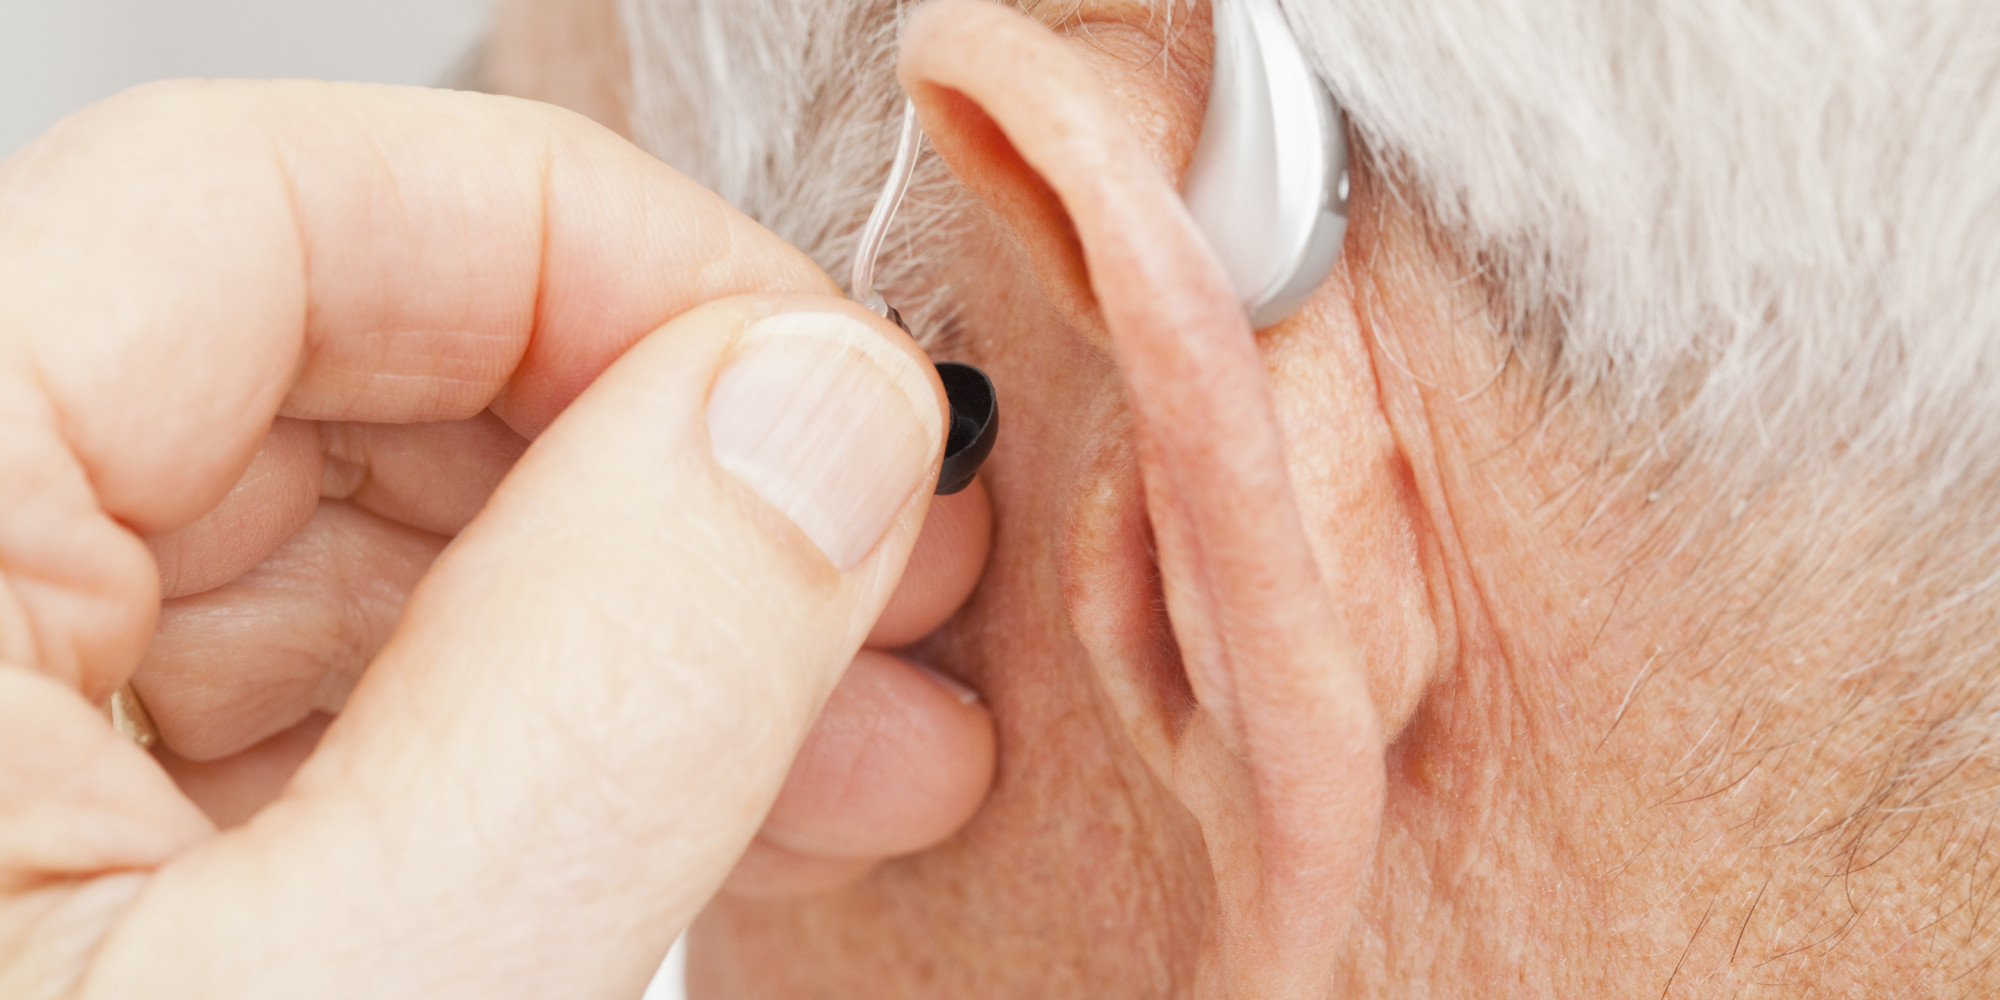 5 Tips for Dating With Hearing Loss